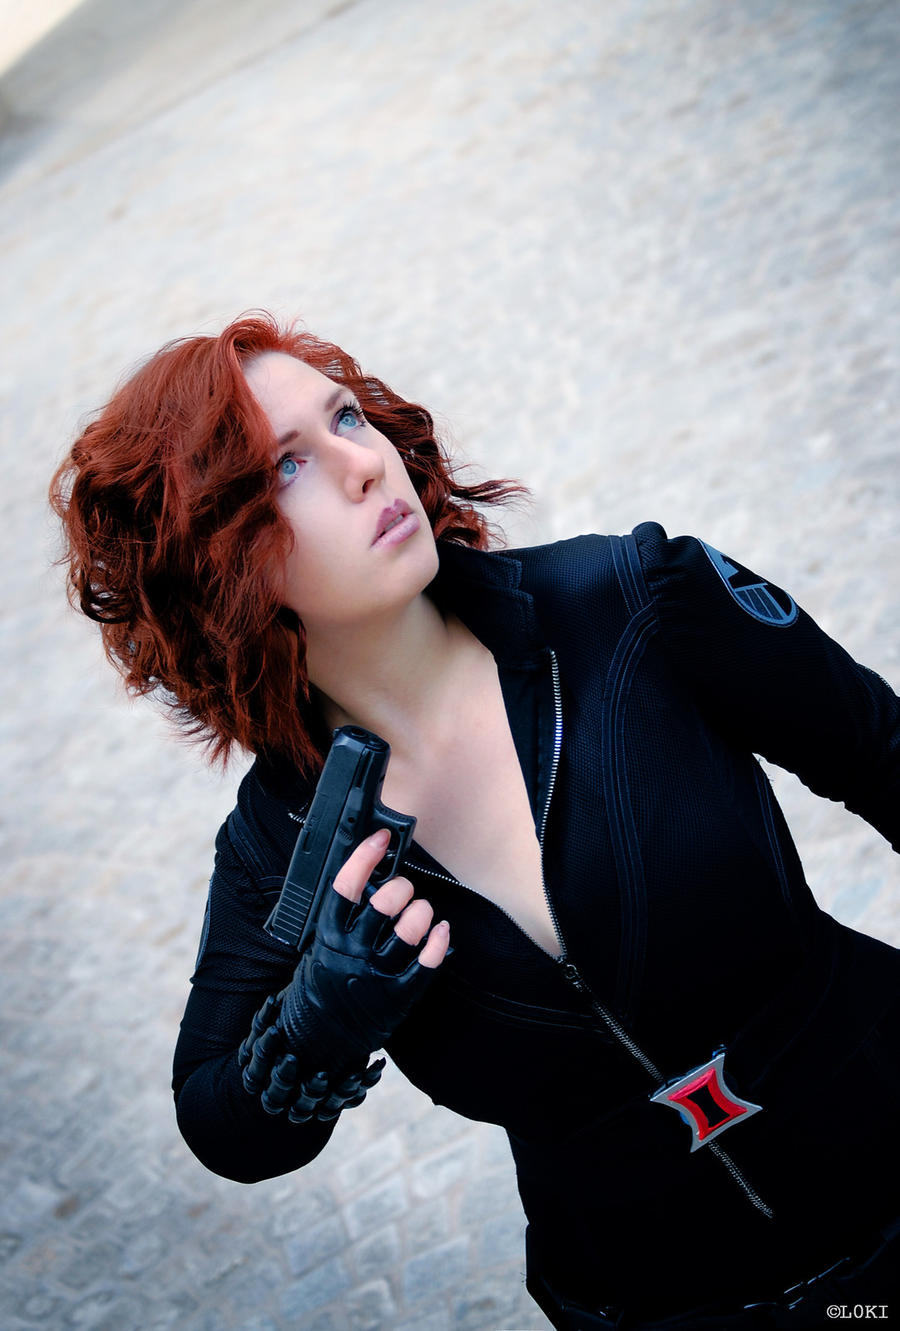 Black Widow - The Avengers by Mi-caw-ber